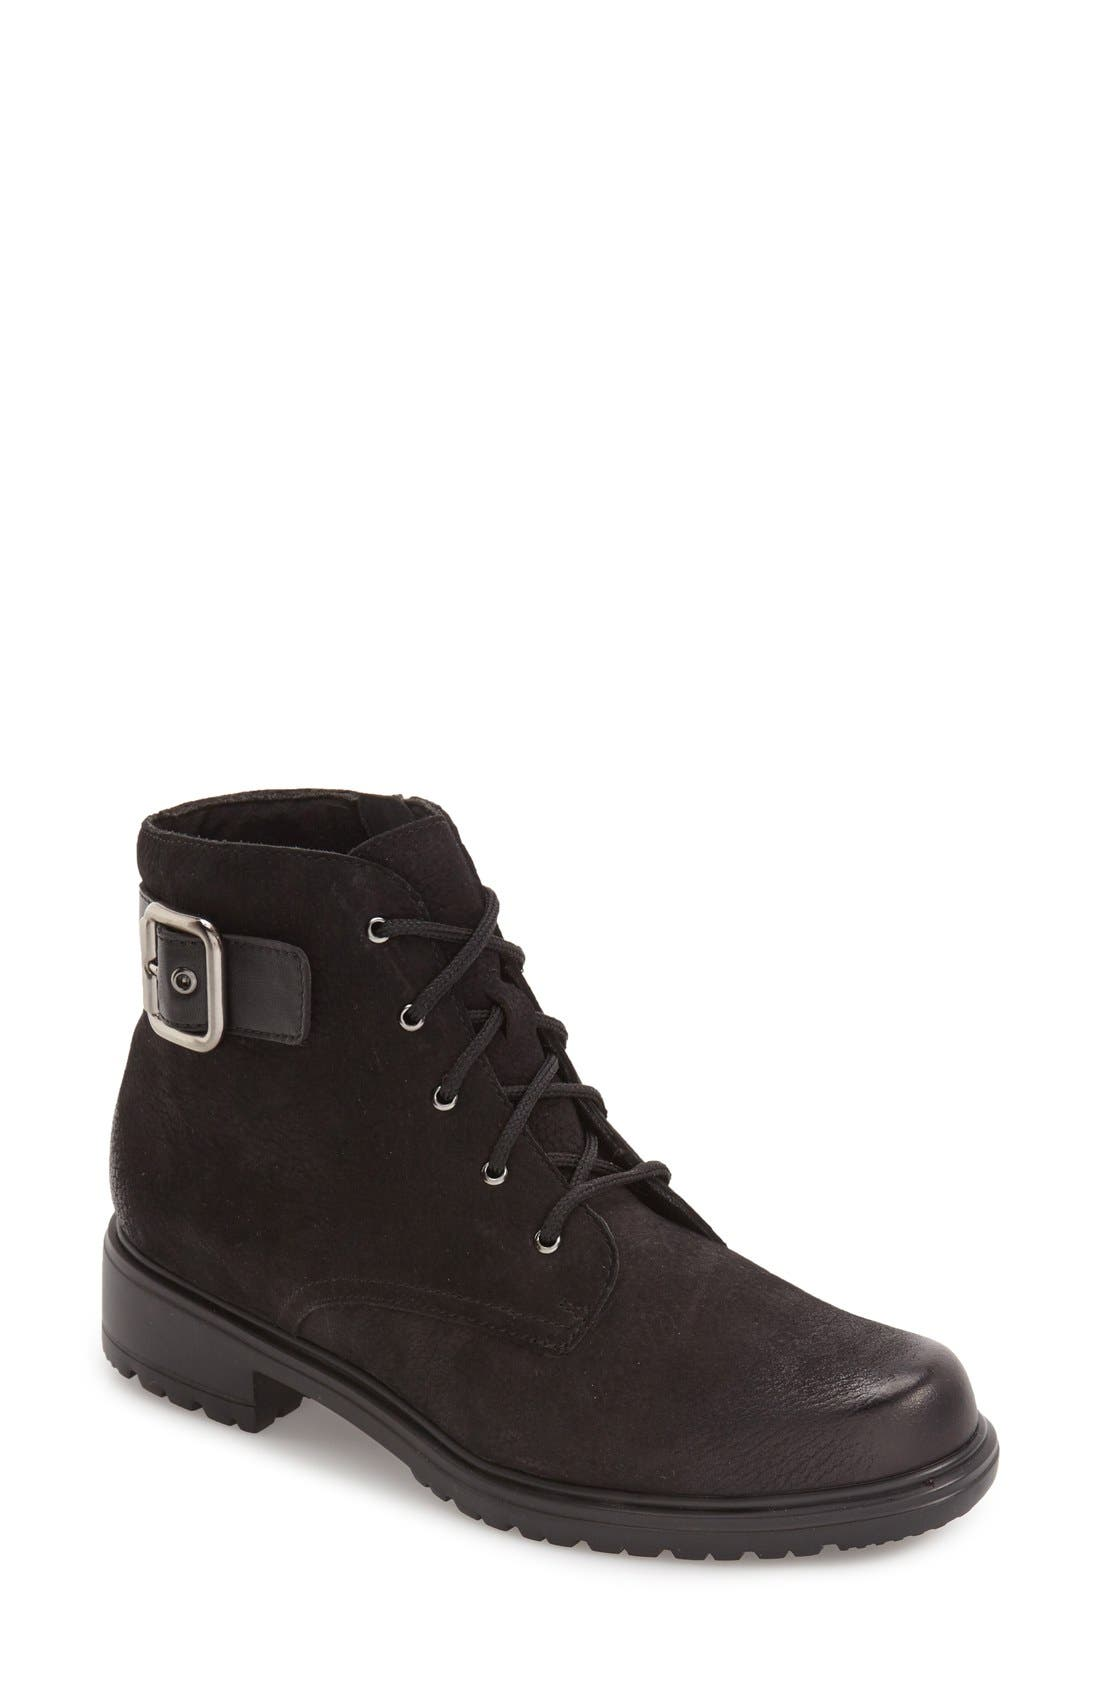 Bradley Water Resistant Boot,                             Main thumbnail 1, color,                             BLACK TUMBLED NUBUCK LEATHER